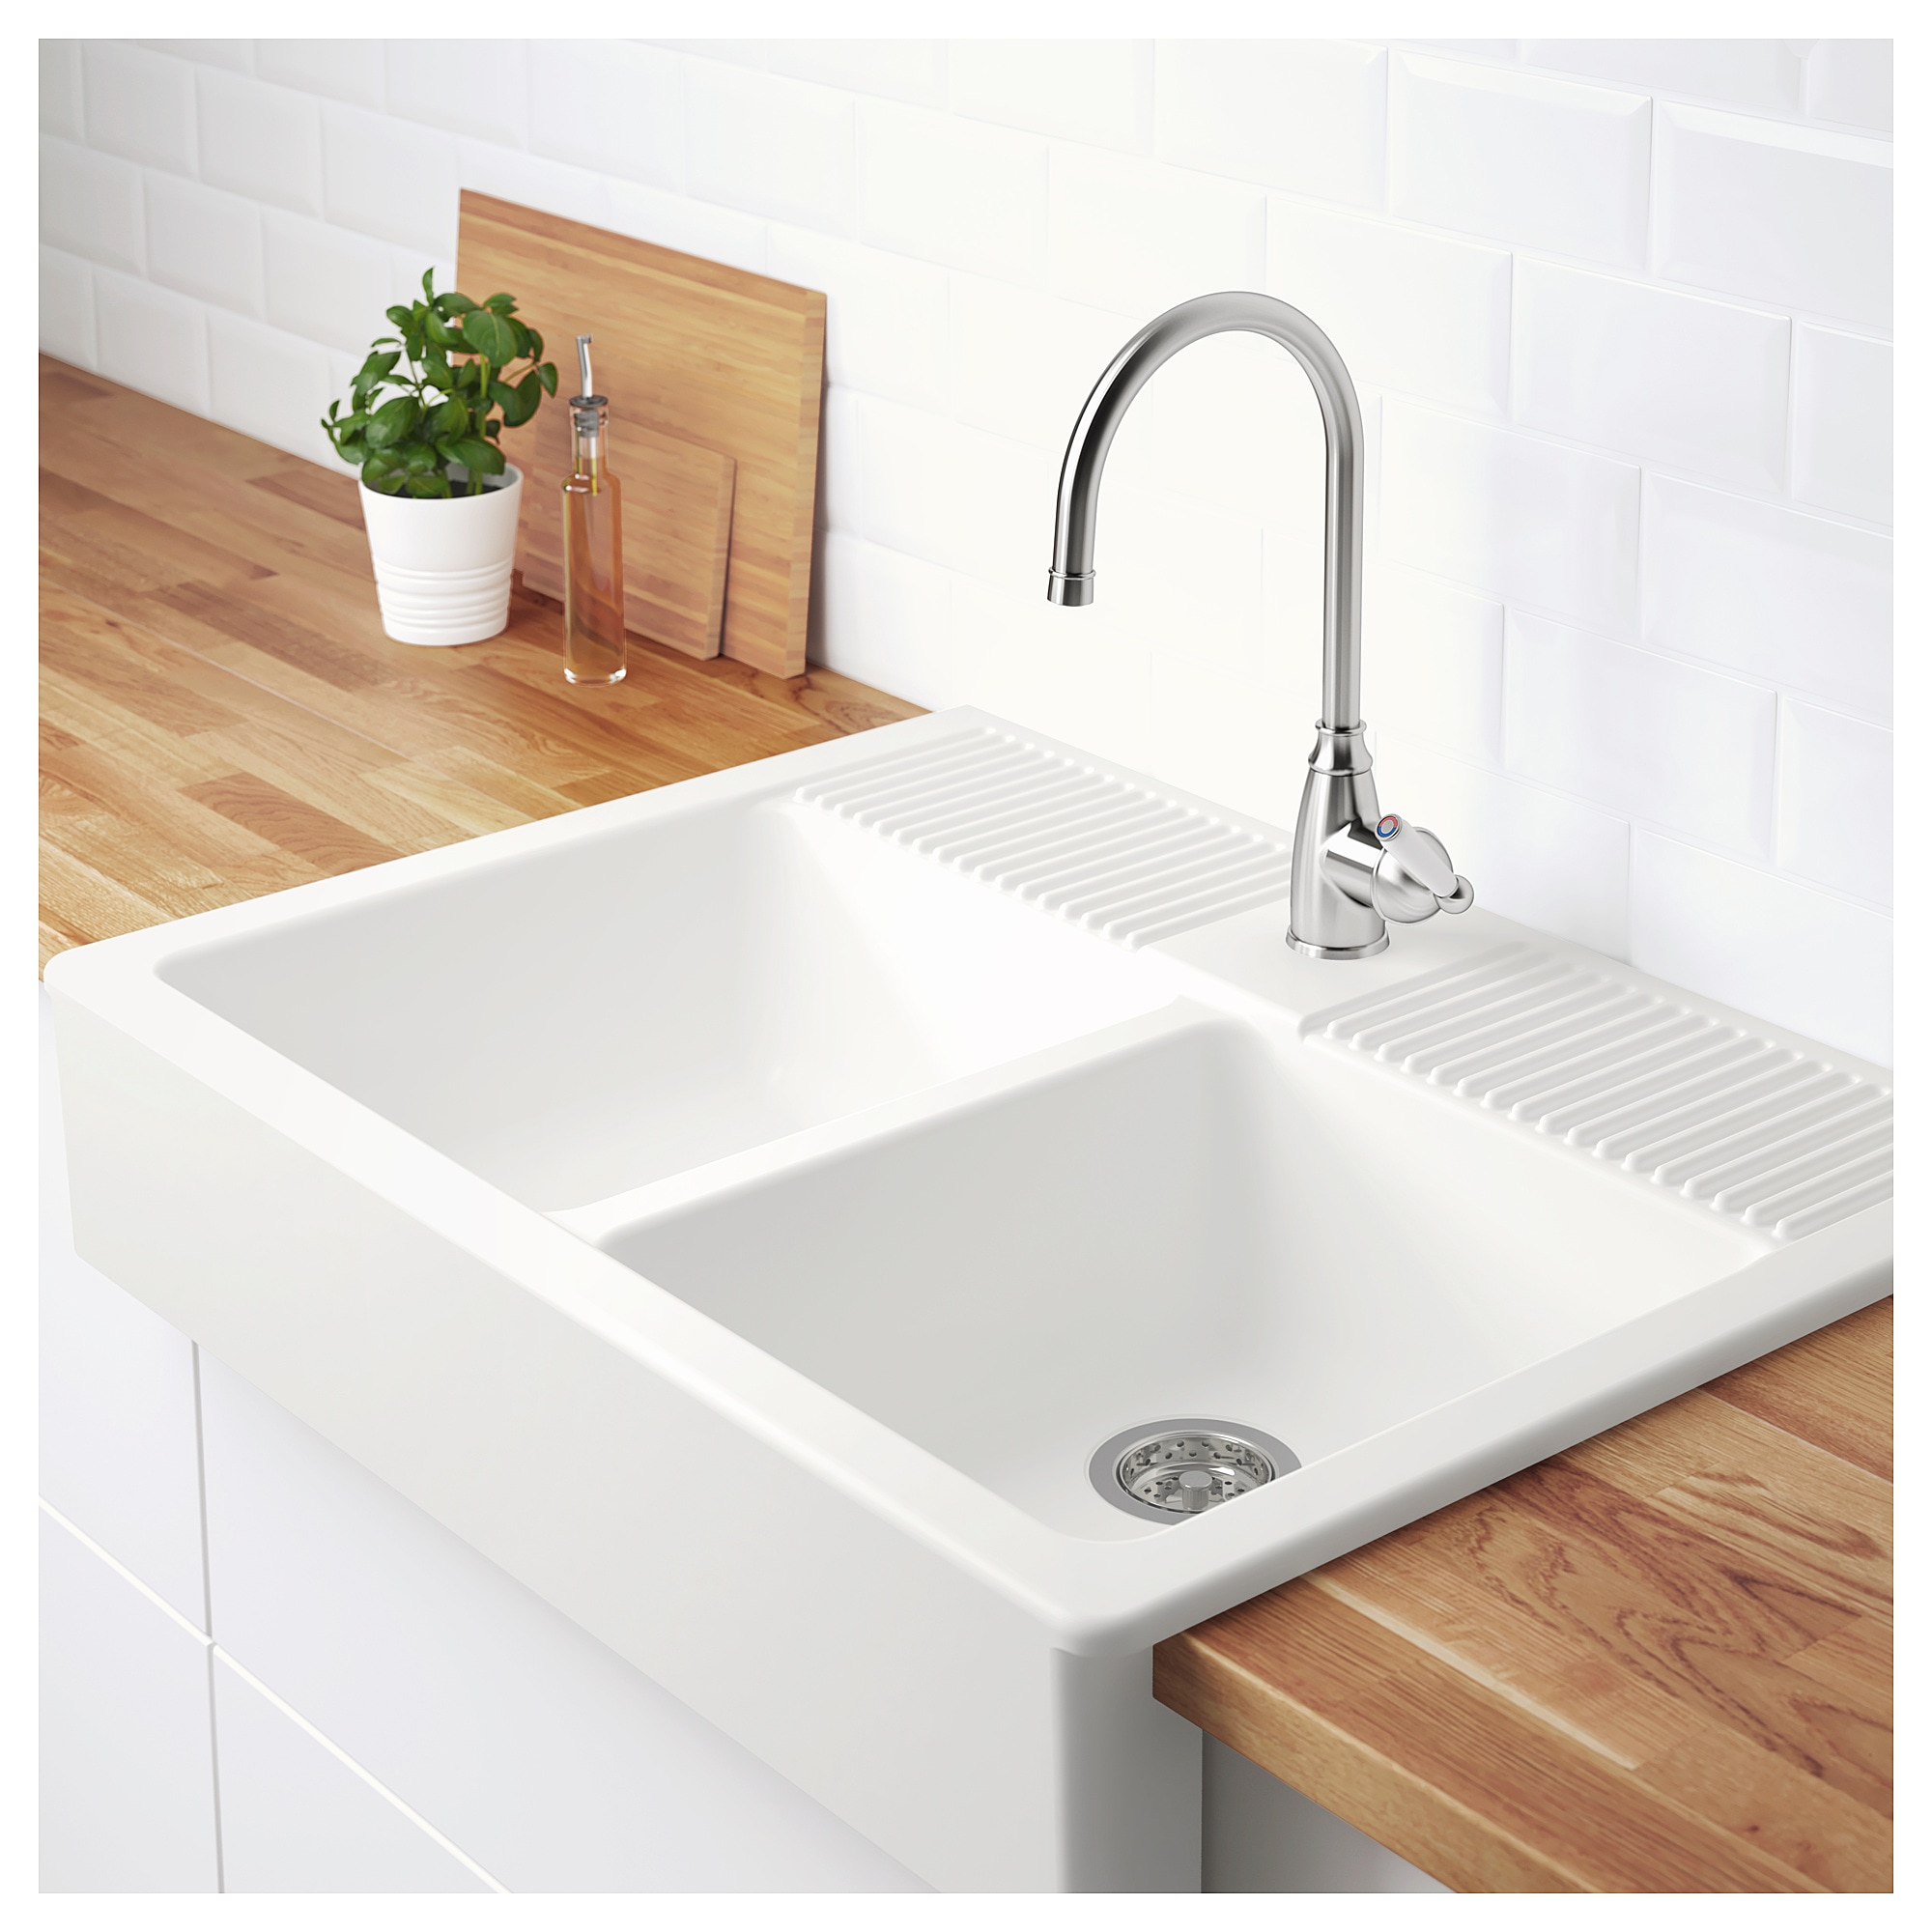 Interior Ikea Apron Front Sink onset sink 2 bowls ikea